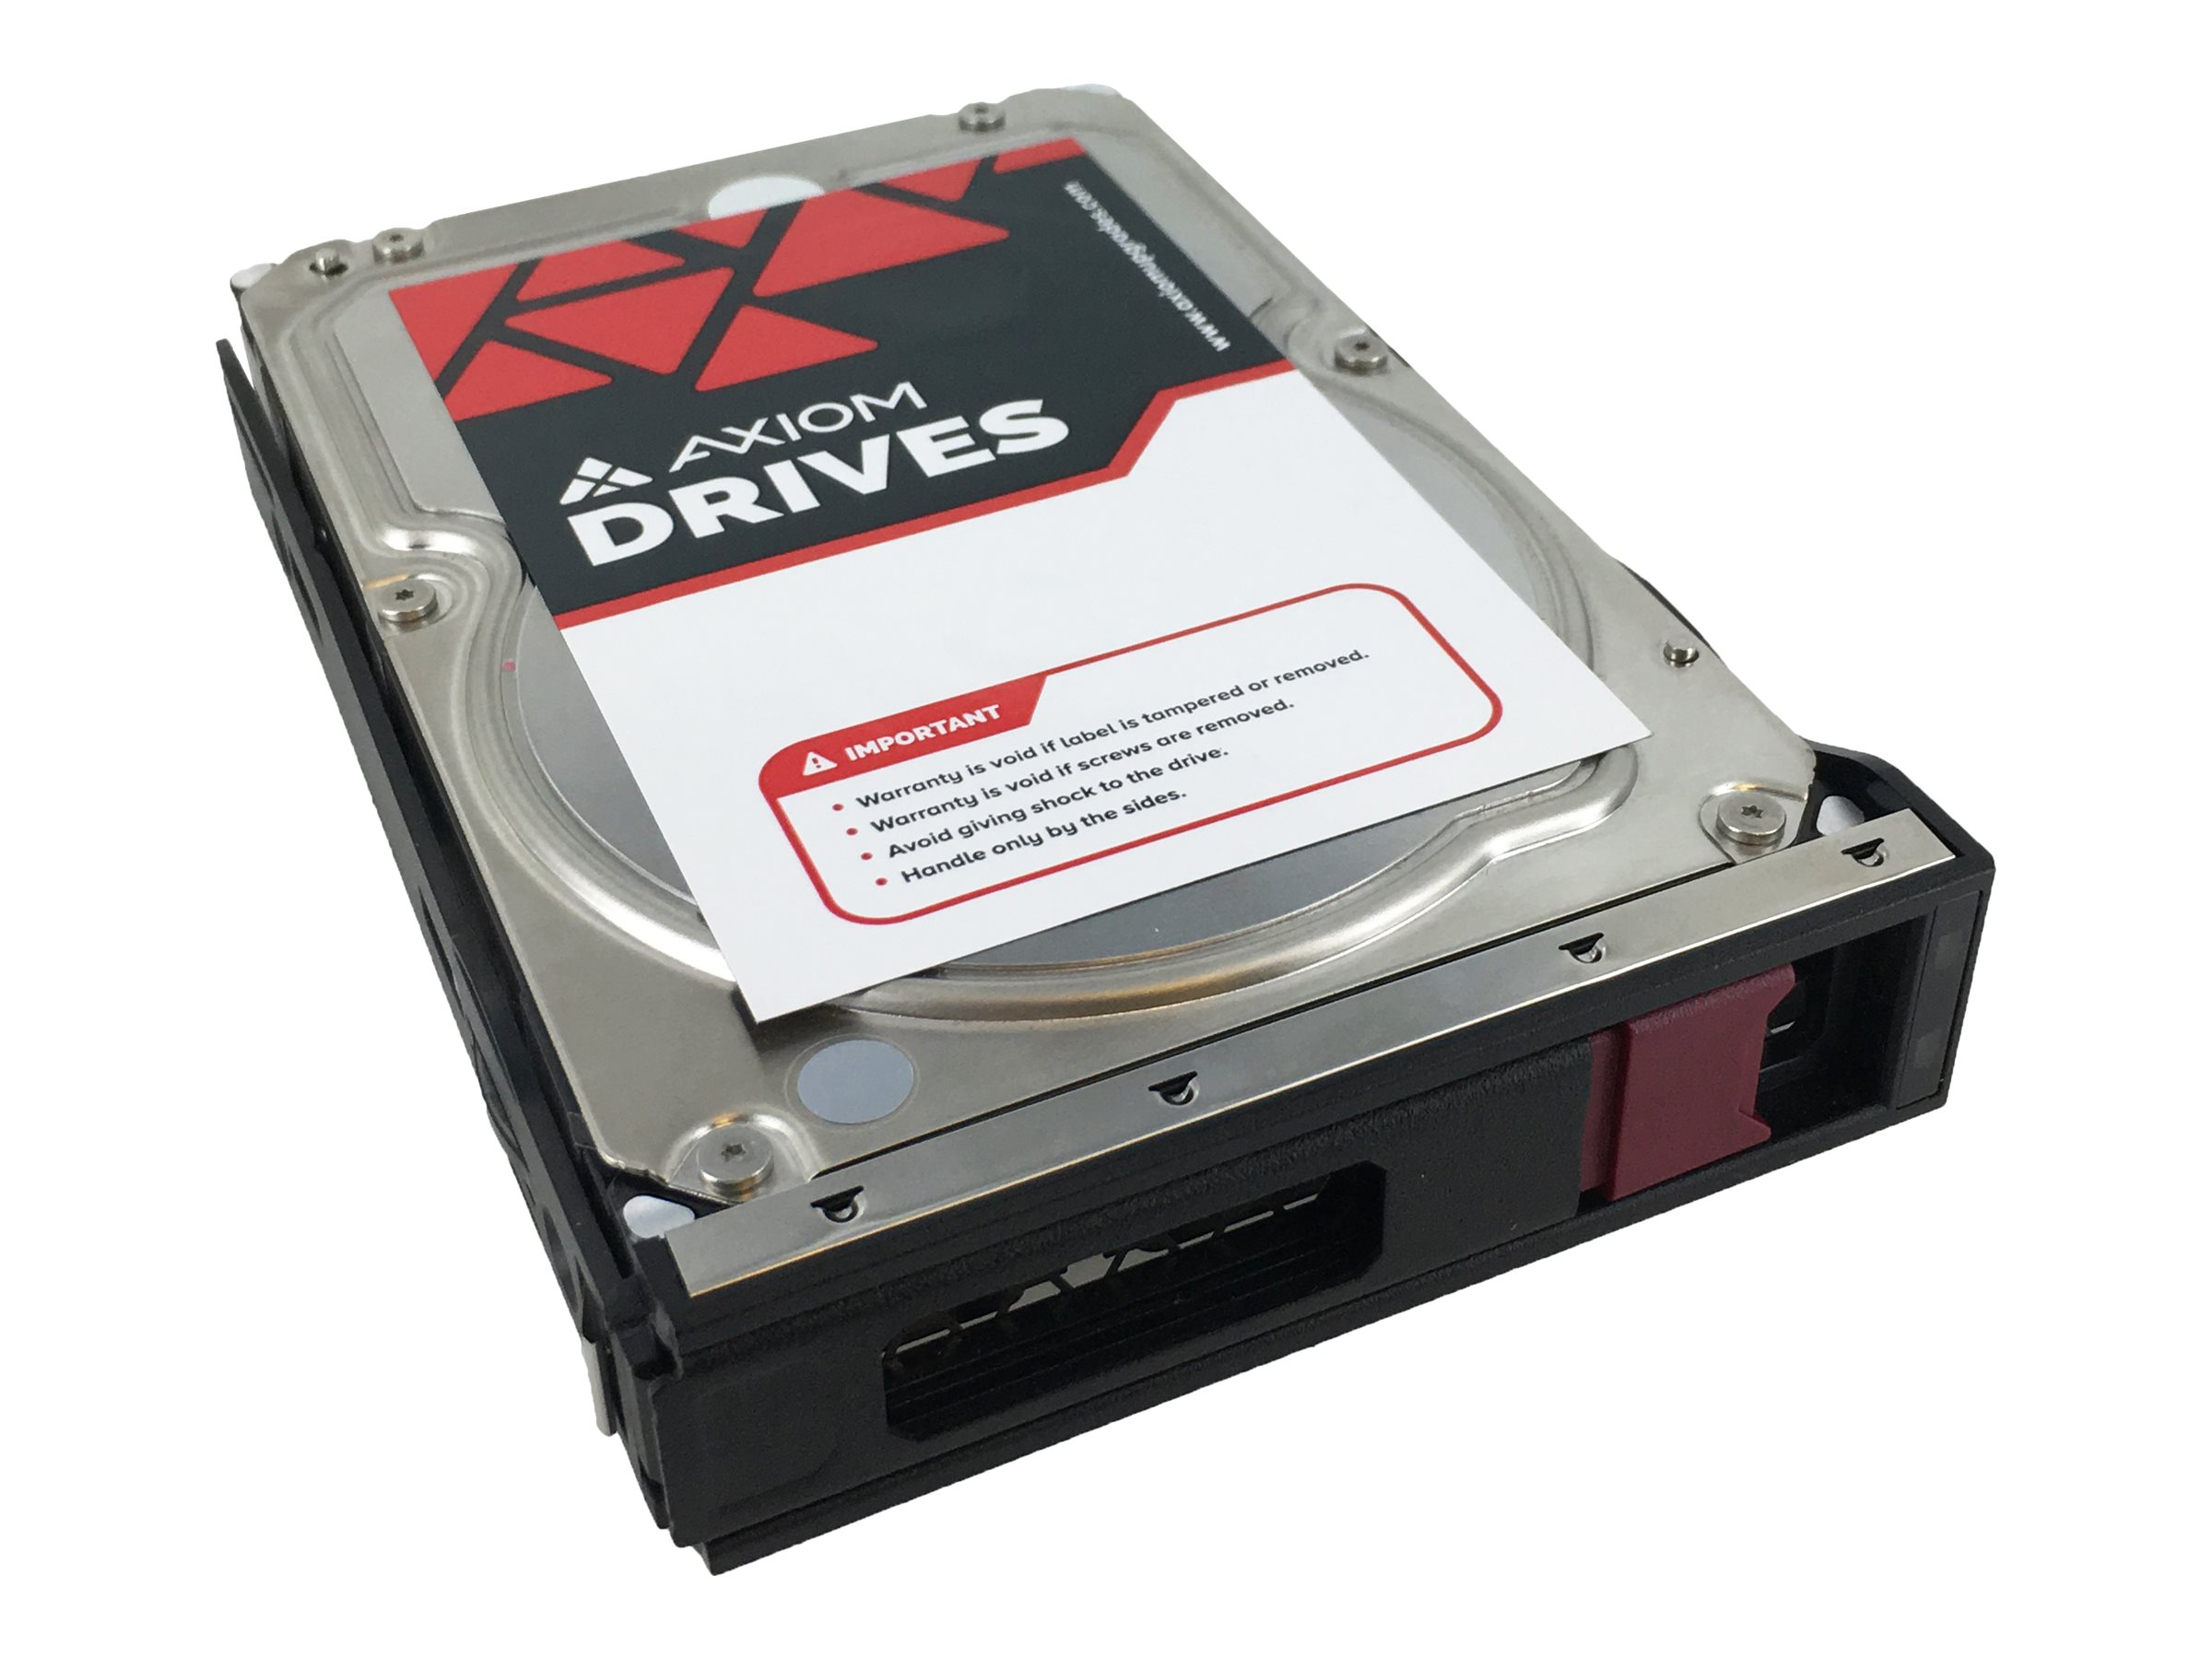 Axiom Enterprise - hard drive - 6 TB - SATA 6Gb/s